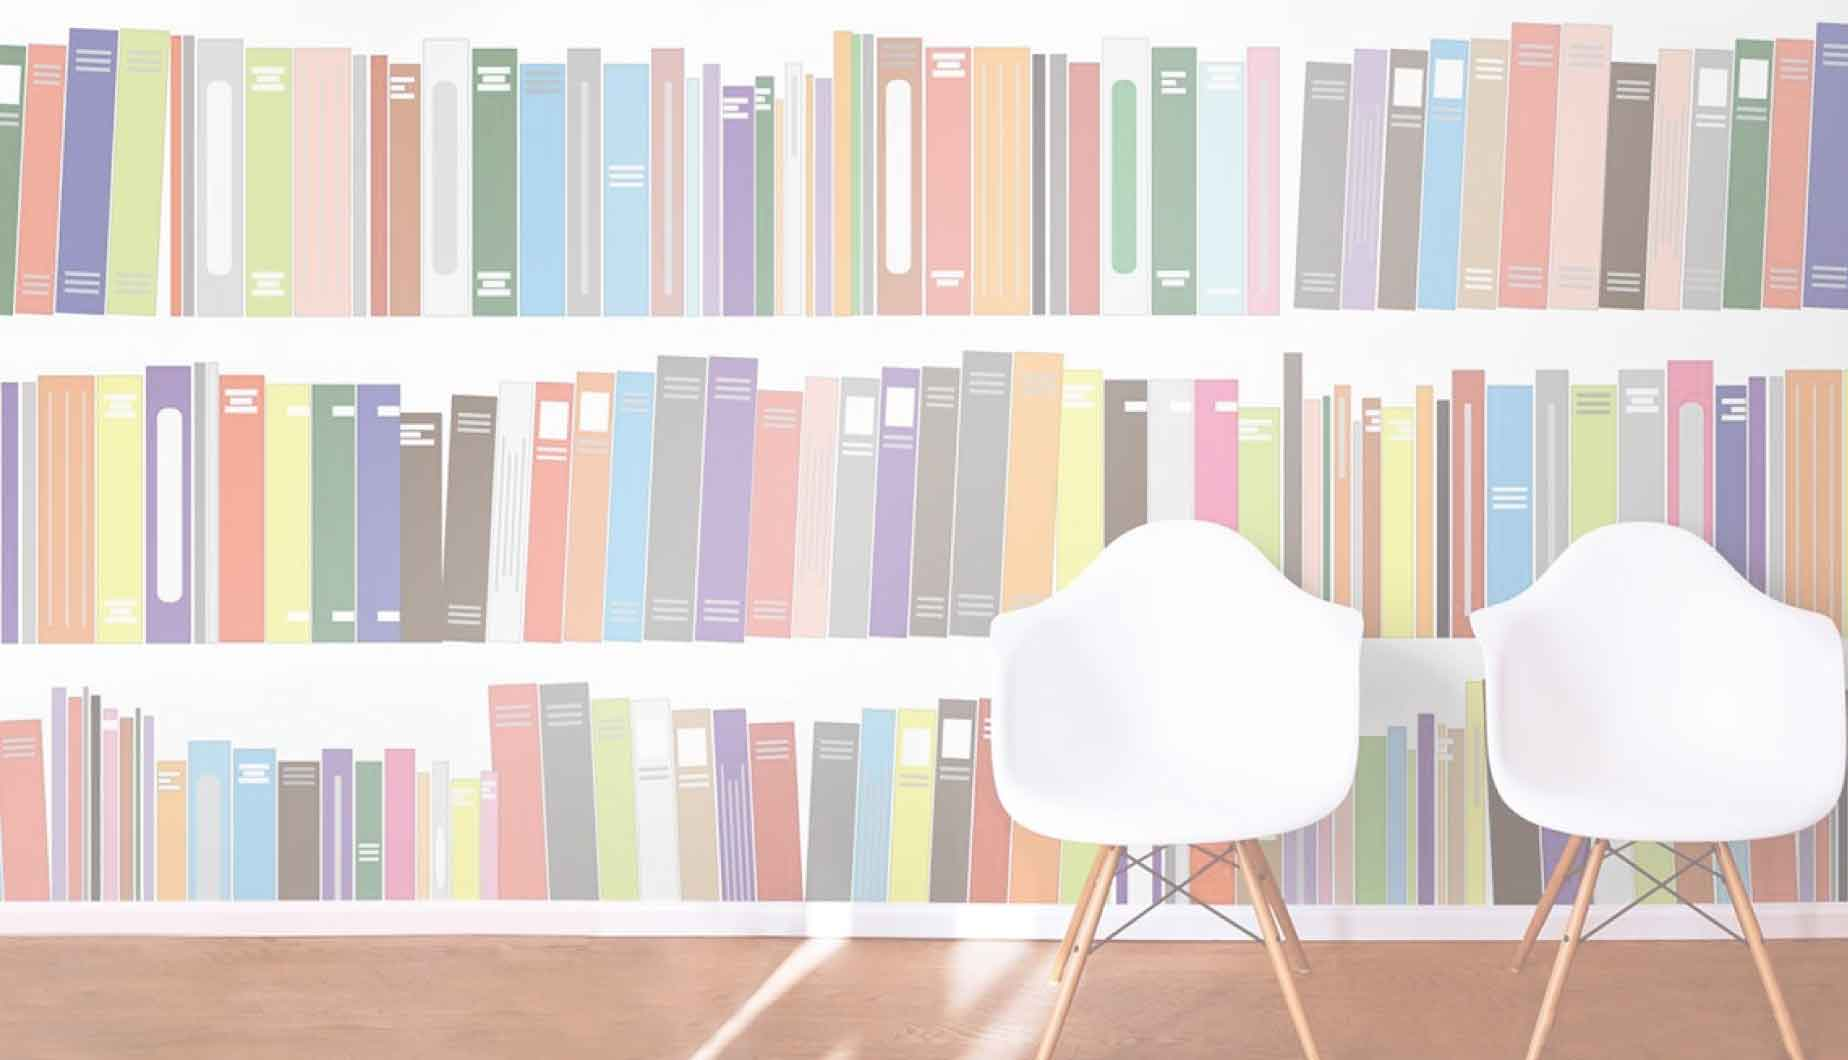 Illustration of two chairs in front of a shelf of books and resources